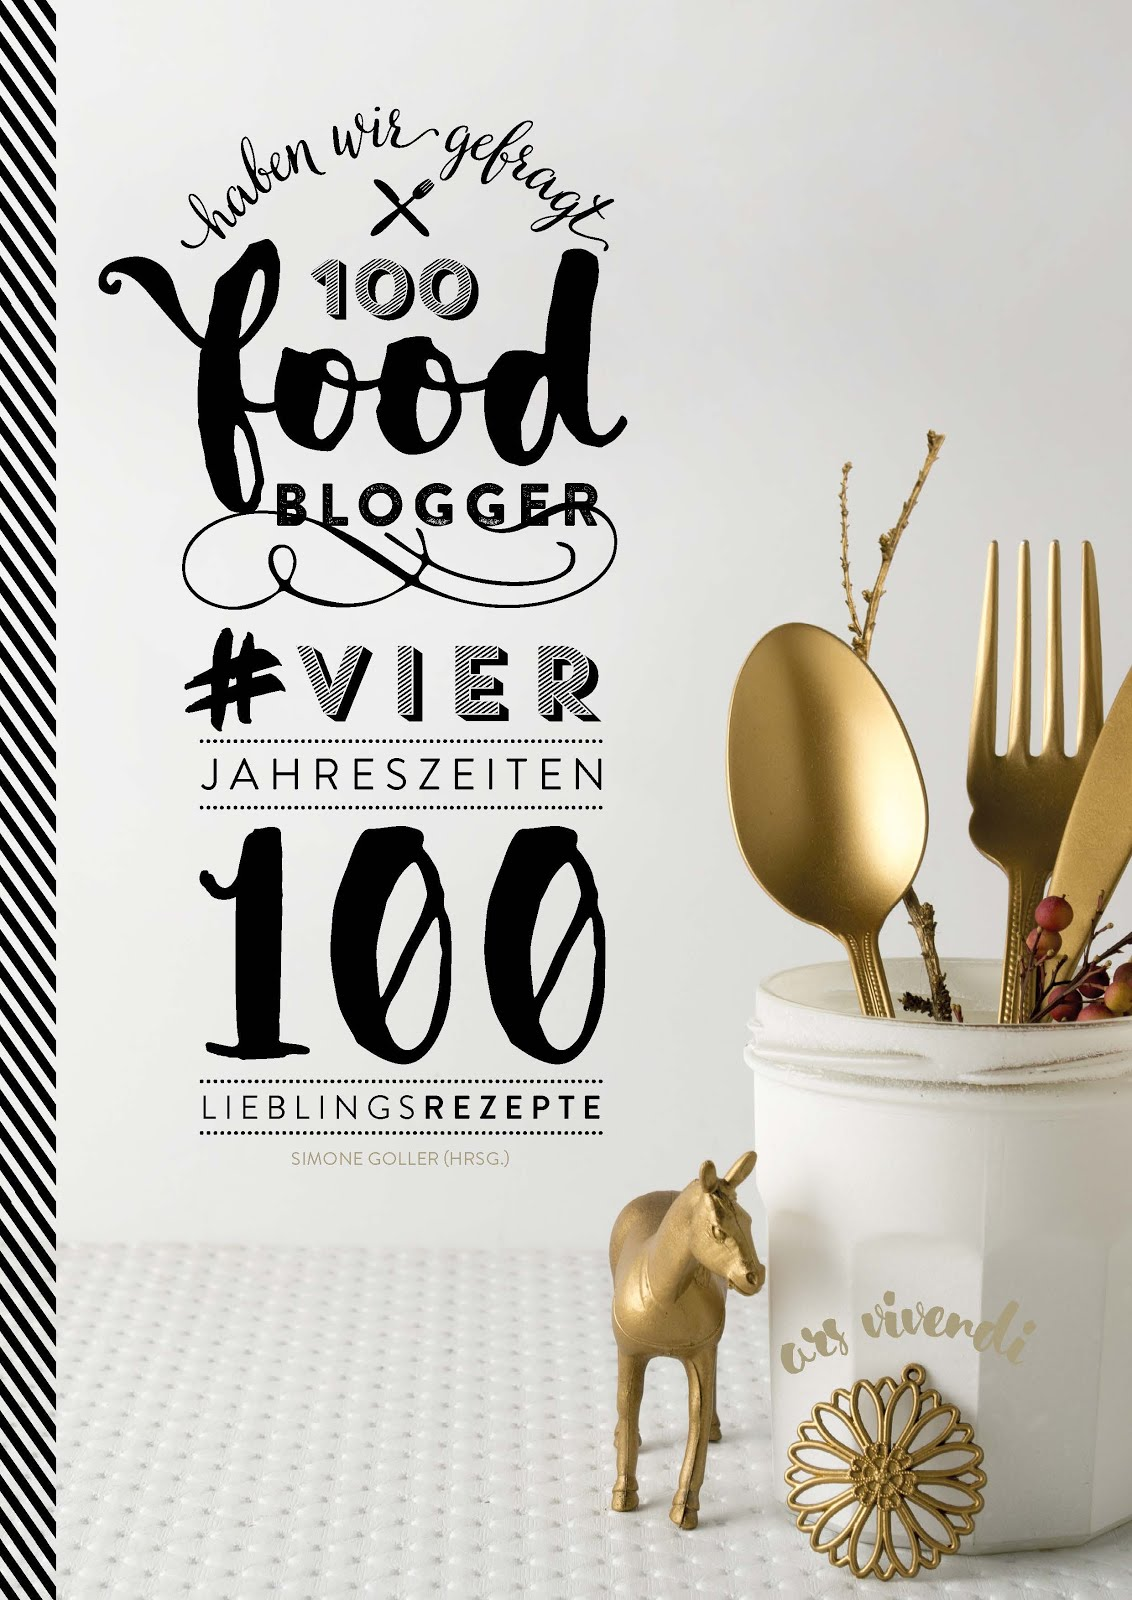 100 food BLOGGER ... ist da!